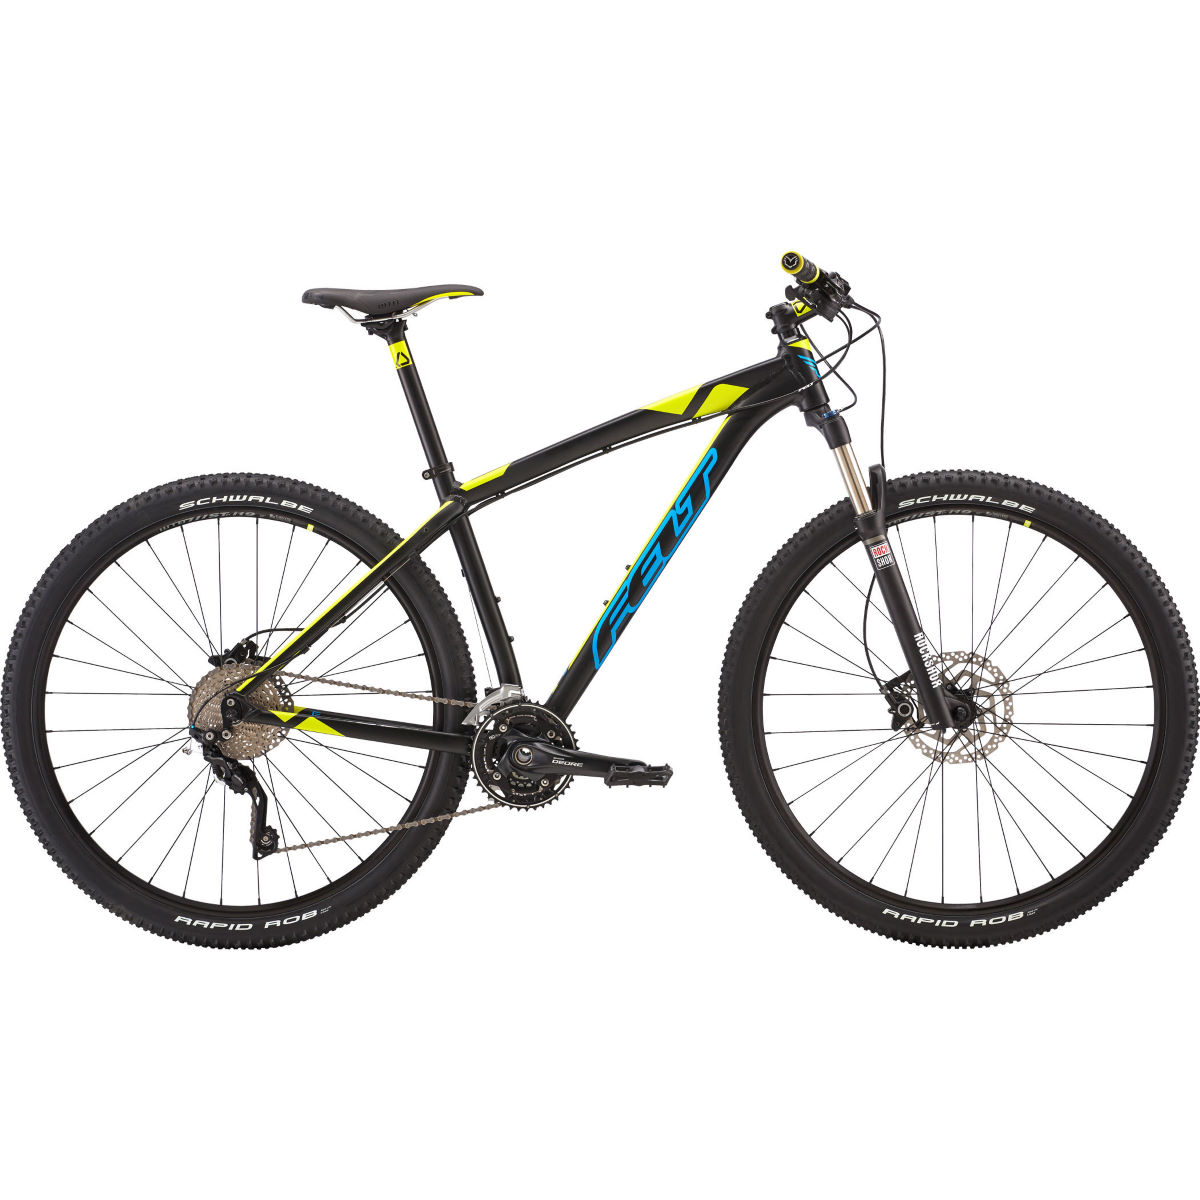 VTT Felt Nine 50 (2017) - 18'' Matte Black/Blue VTT semi-rigides